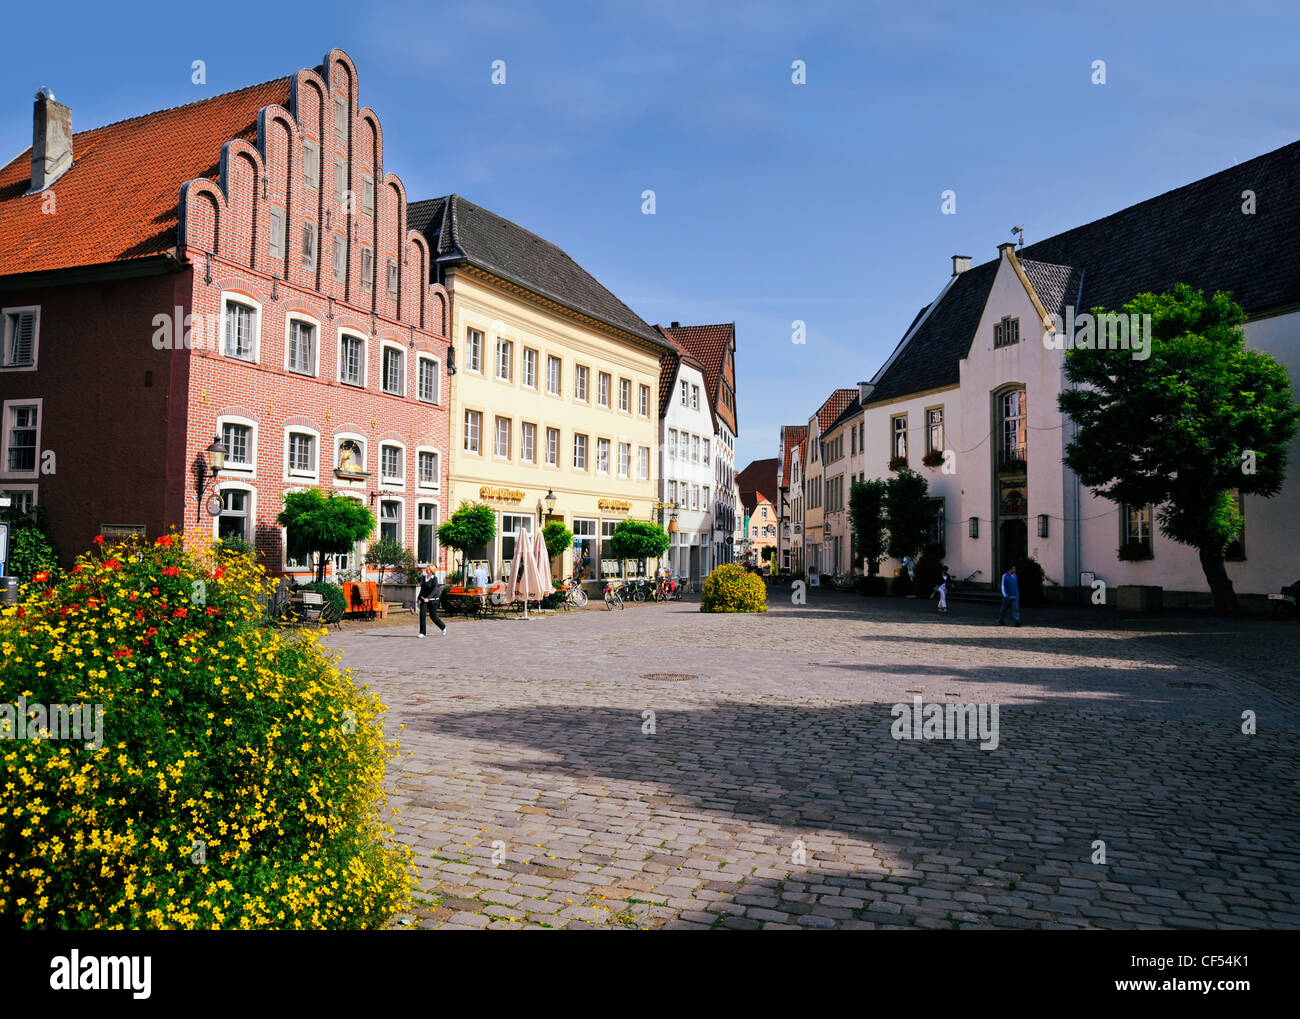 der alte markt platz warendorf deutschland stockfoto bild 43754005 alamy. Black Bedroom Furniture Sets. Home Design Ideas